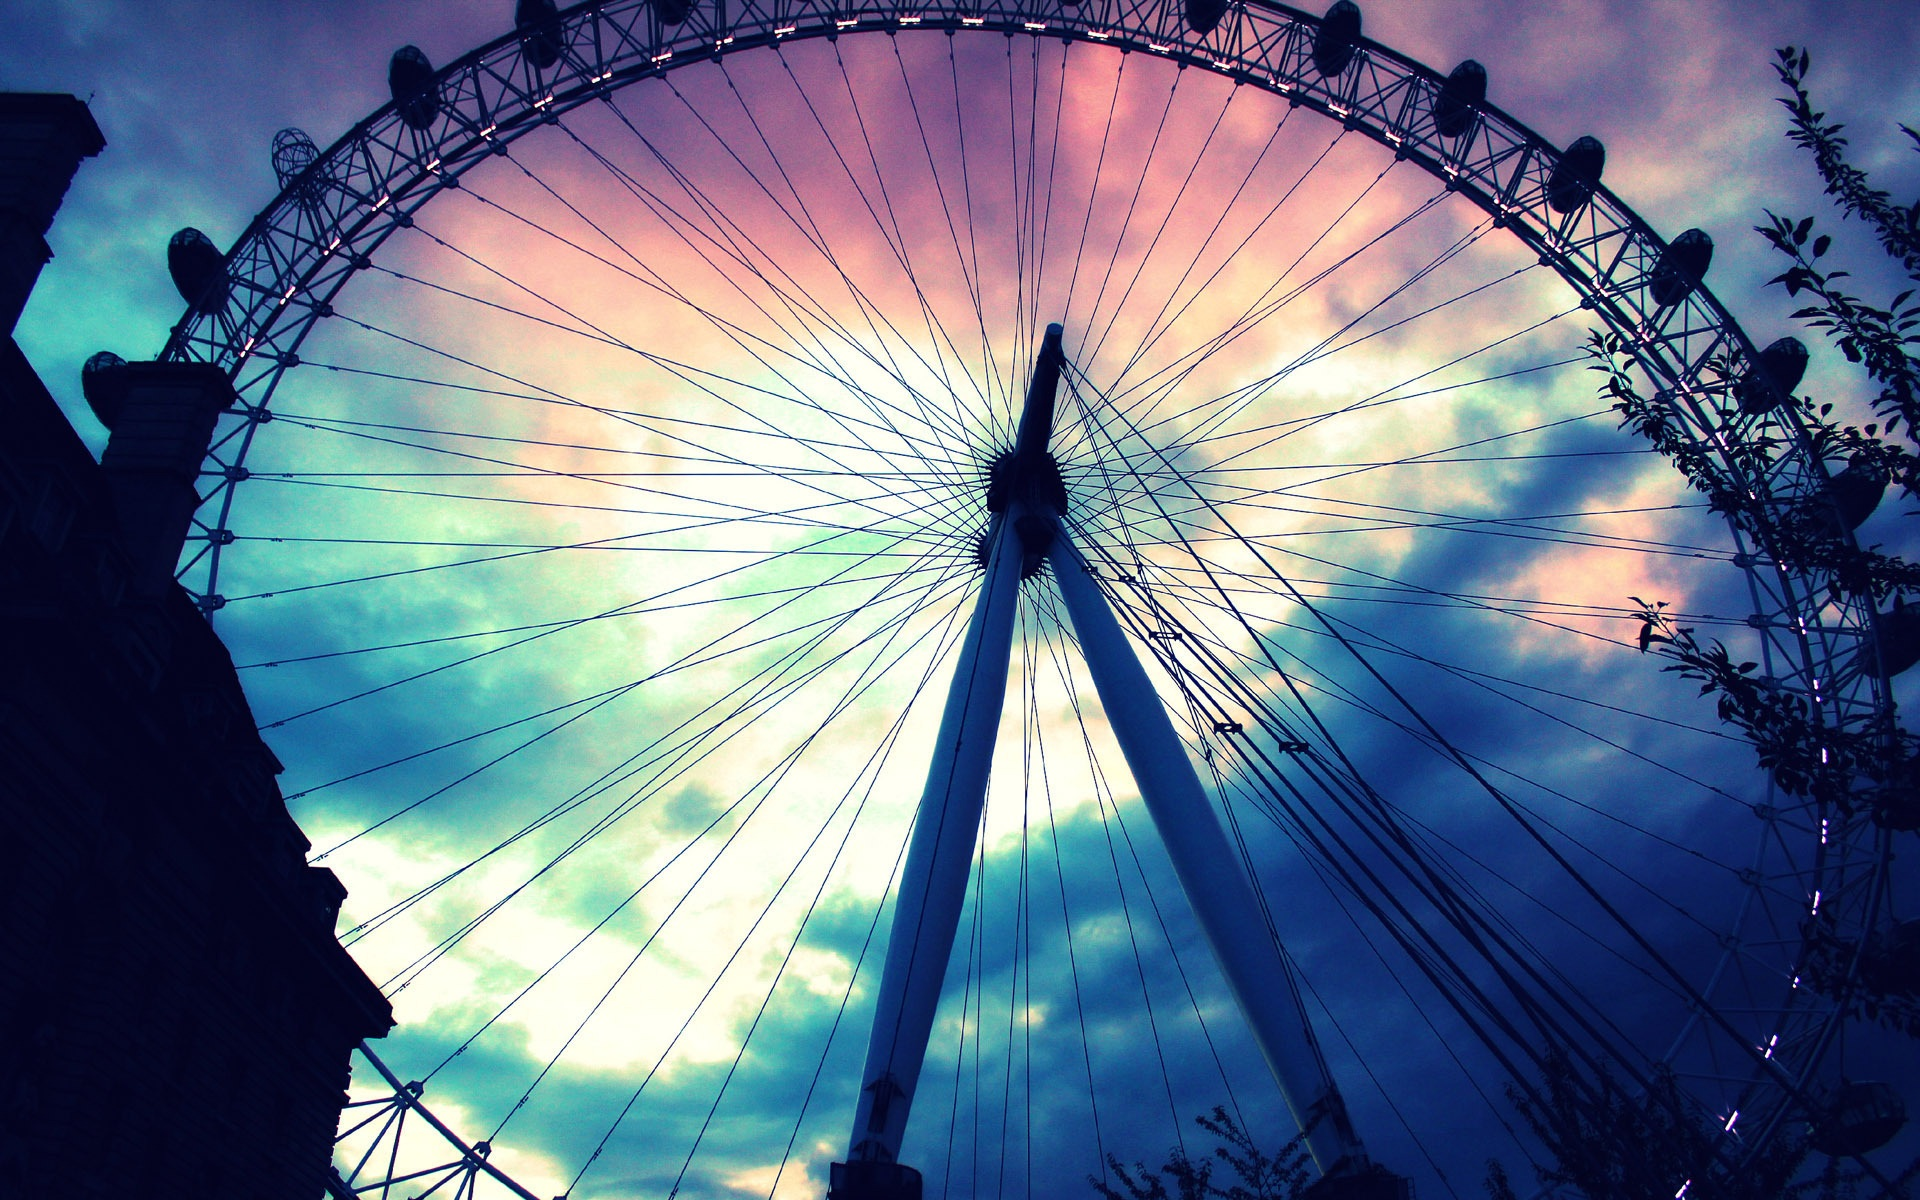 Related Wallpapers. Ferris Wheel ...